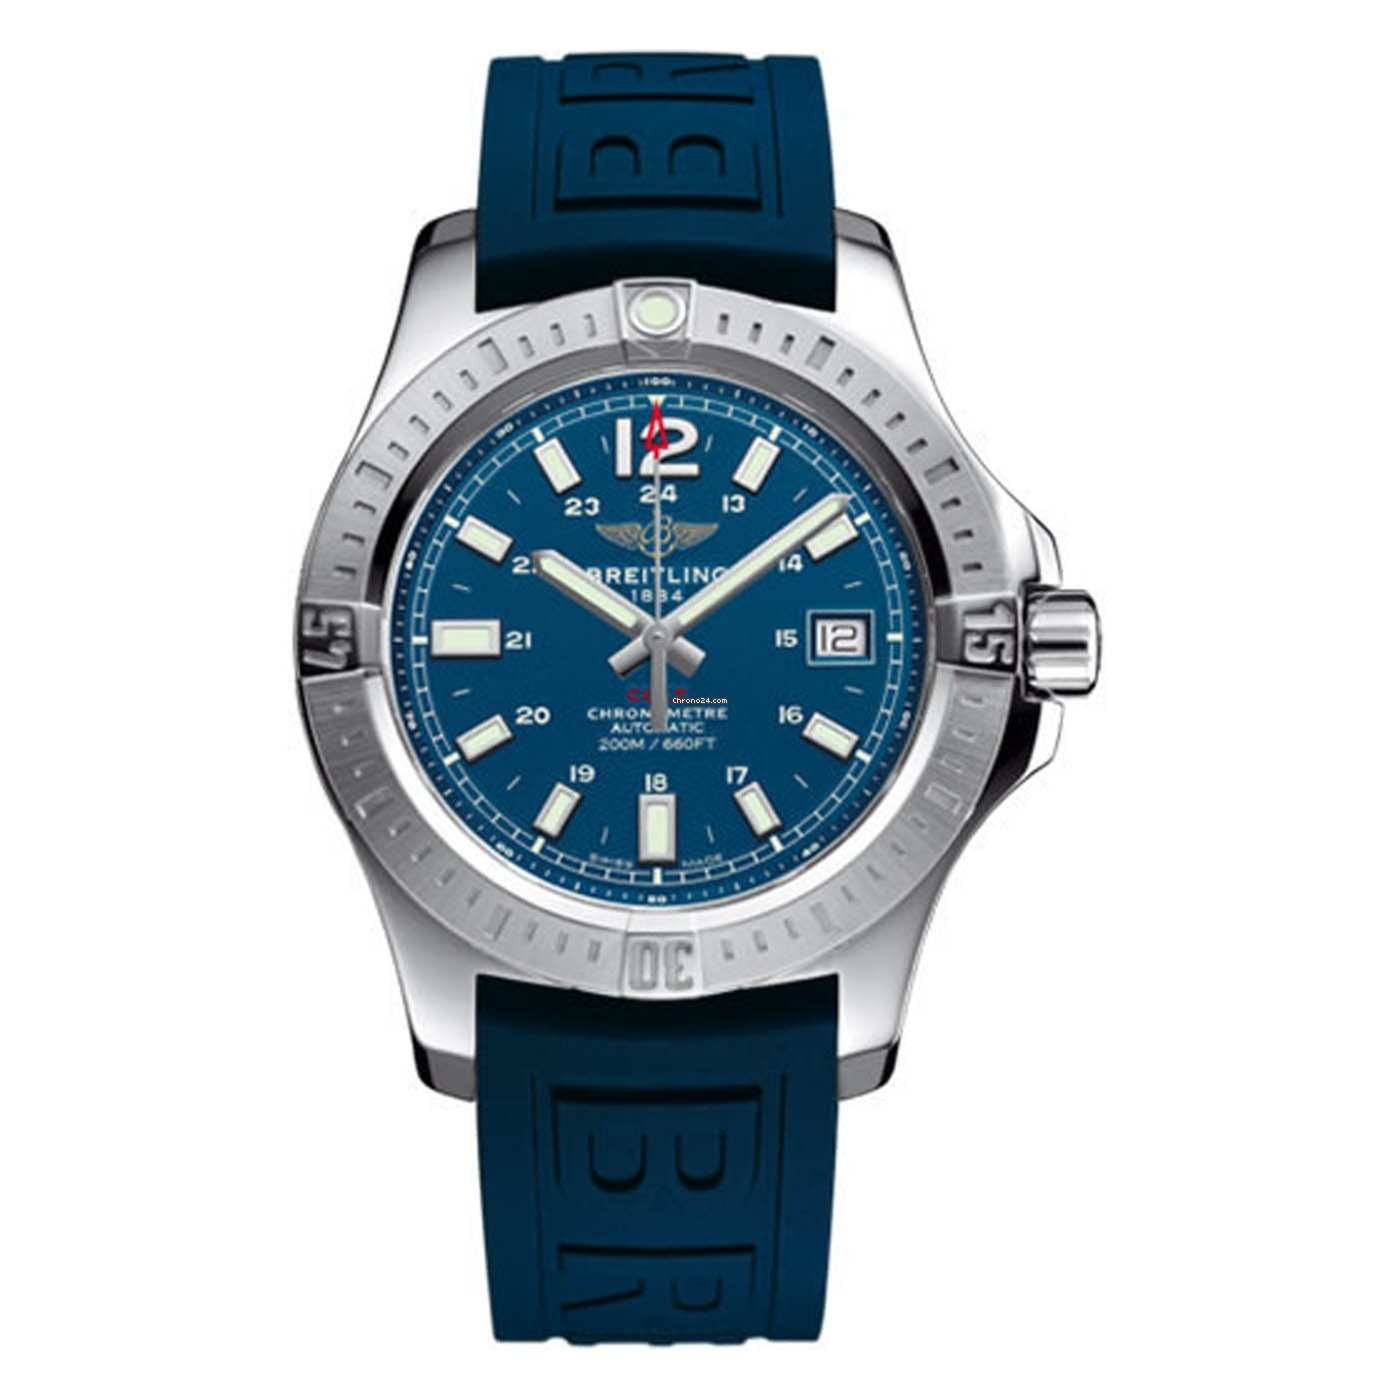 268dbf9e2cb Breitling Colt Chronometer Automatic Blue Dial Mens Watch... for $2,400 for  sale from a Trusted Seller on Chrono24